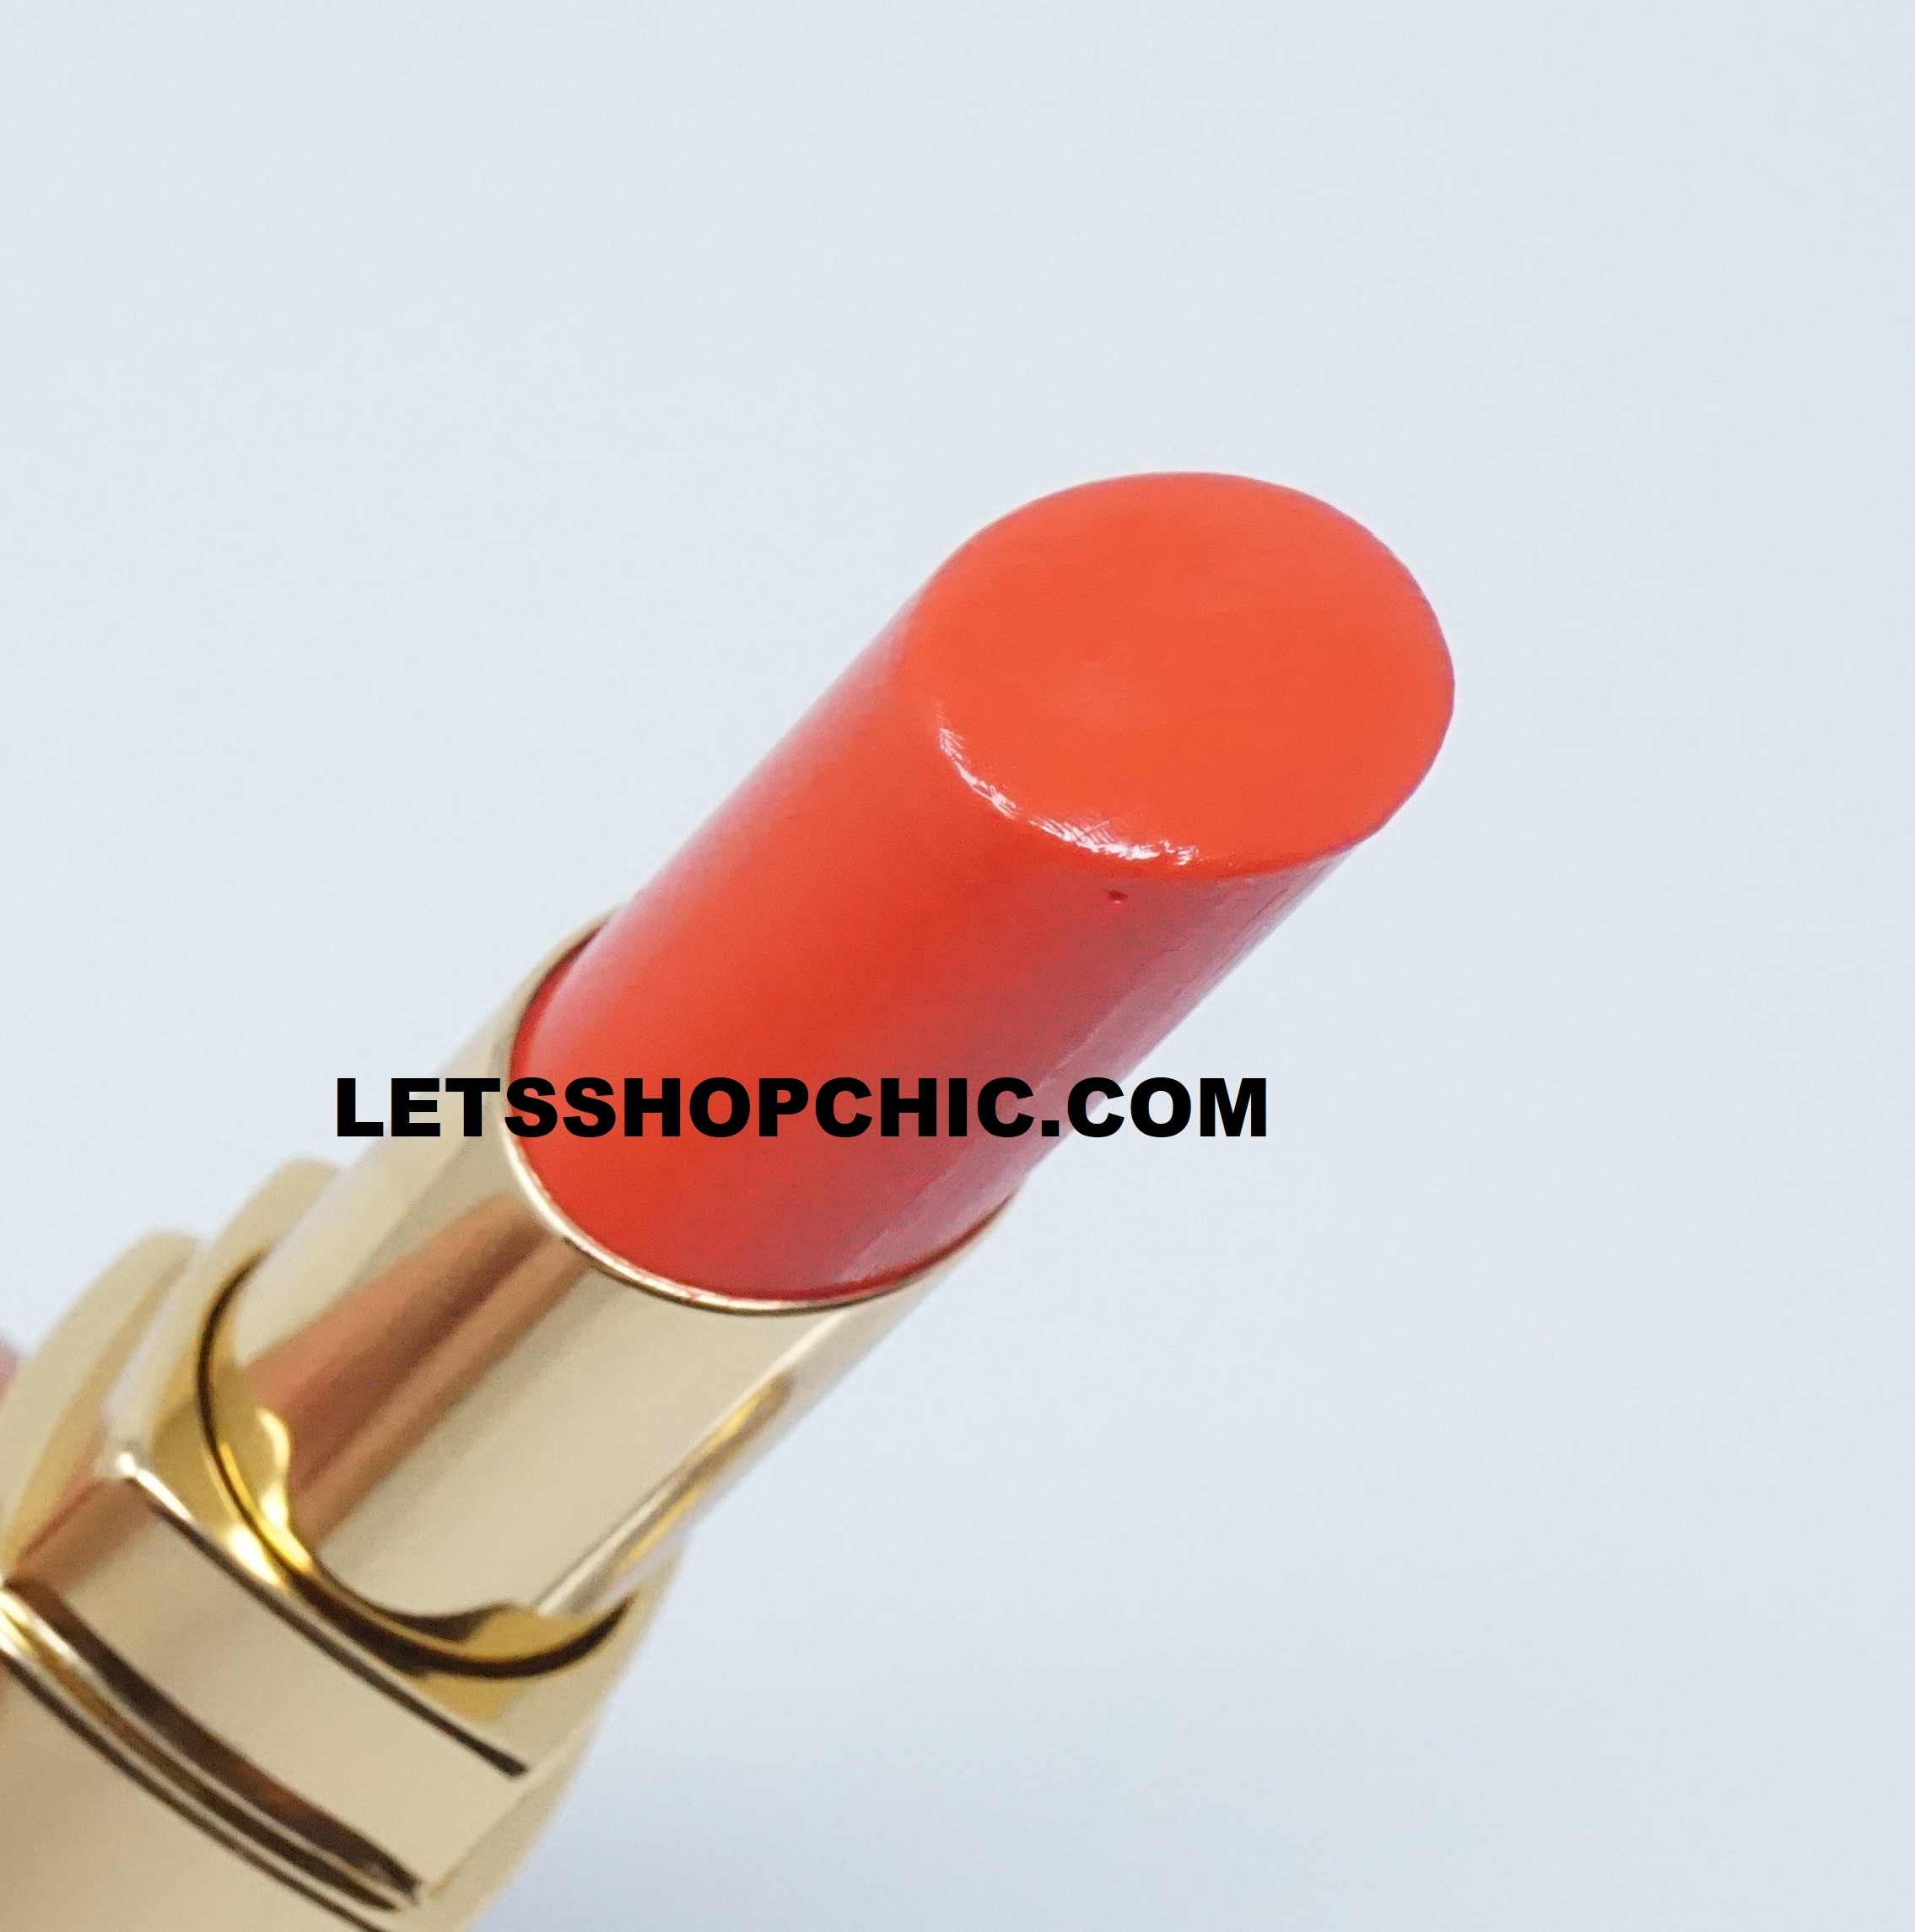 Chanel Rouge Coco Flash Lipstick 60 Beat bullet